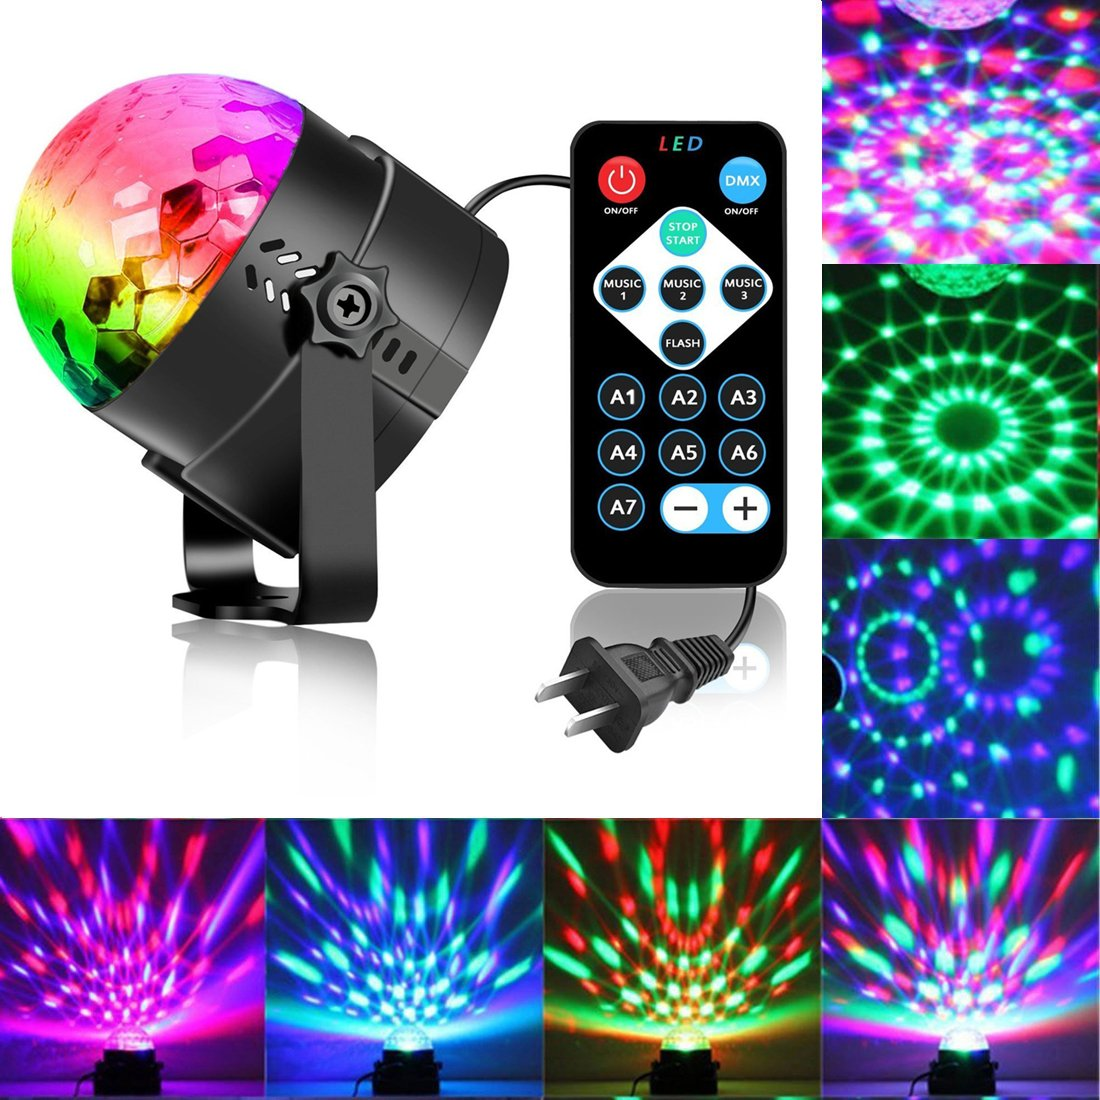 Disco Ball Strobe Light Party Lights Disco Lights Karaoke Machine 3W Dj Light LED Portable 7Colors Sound Activated Stage Lights for Festival Bar Club Party Outdoor and More (with Remote) by bestcan (Image #1)